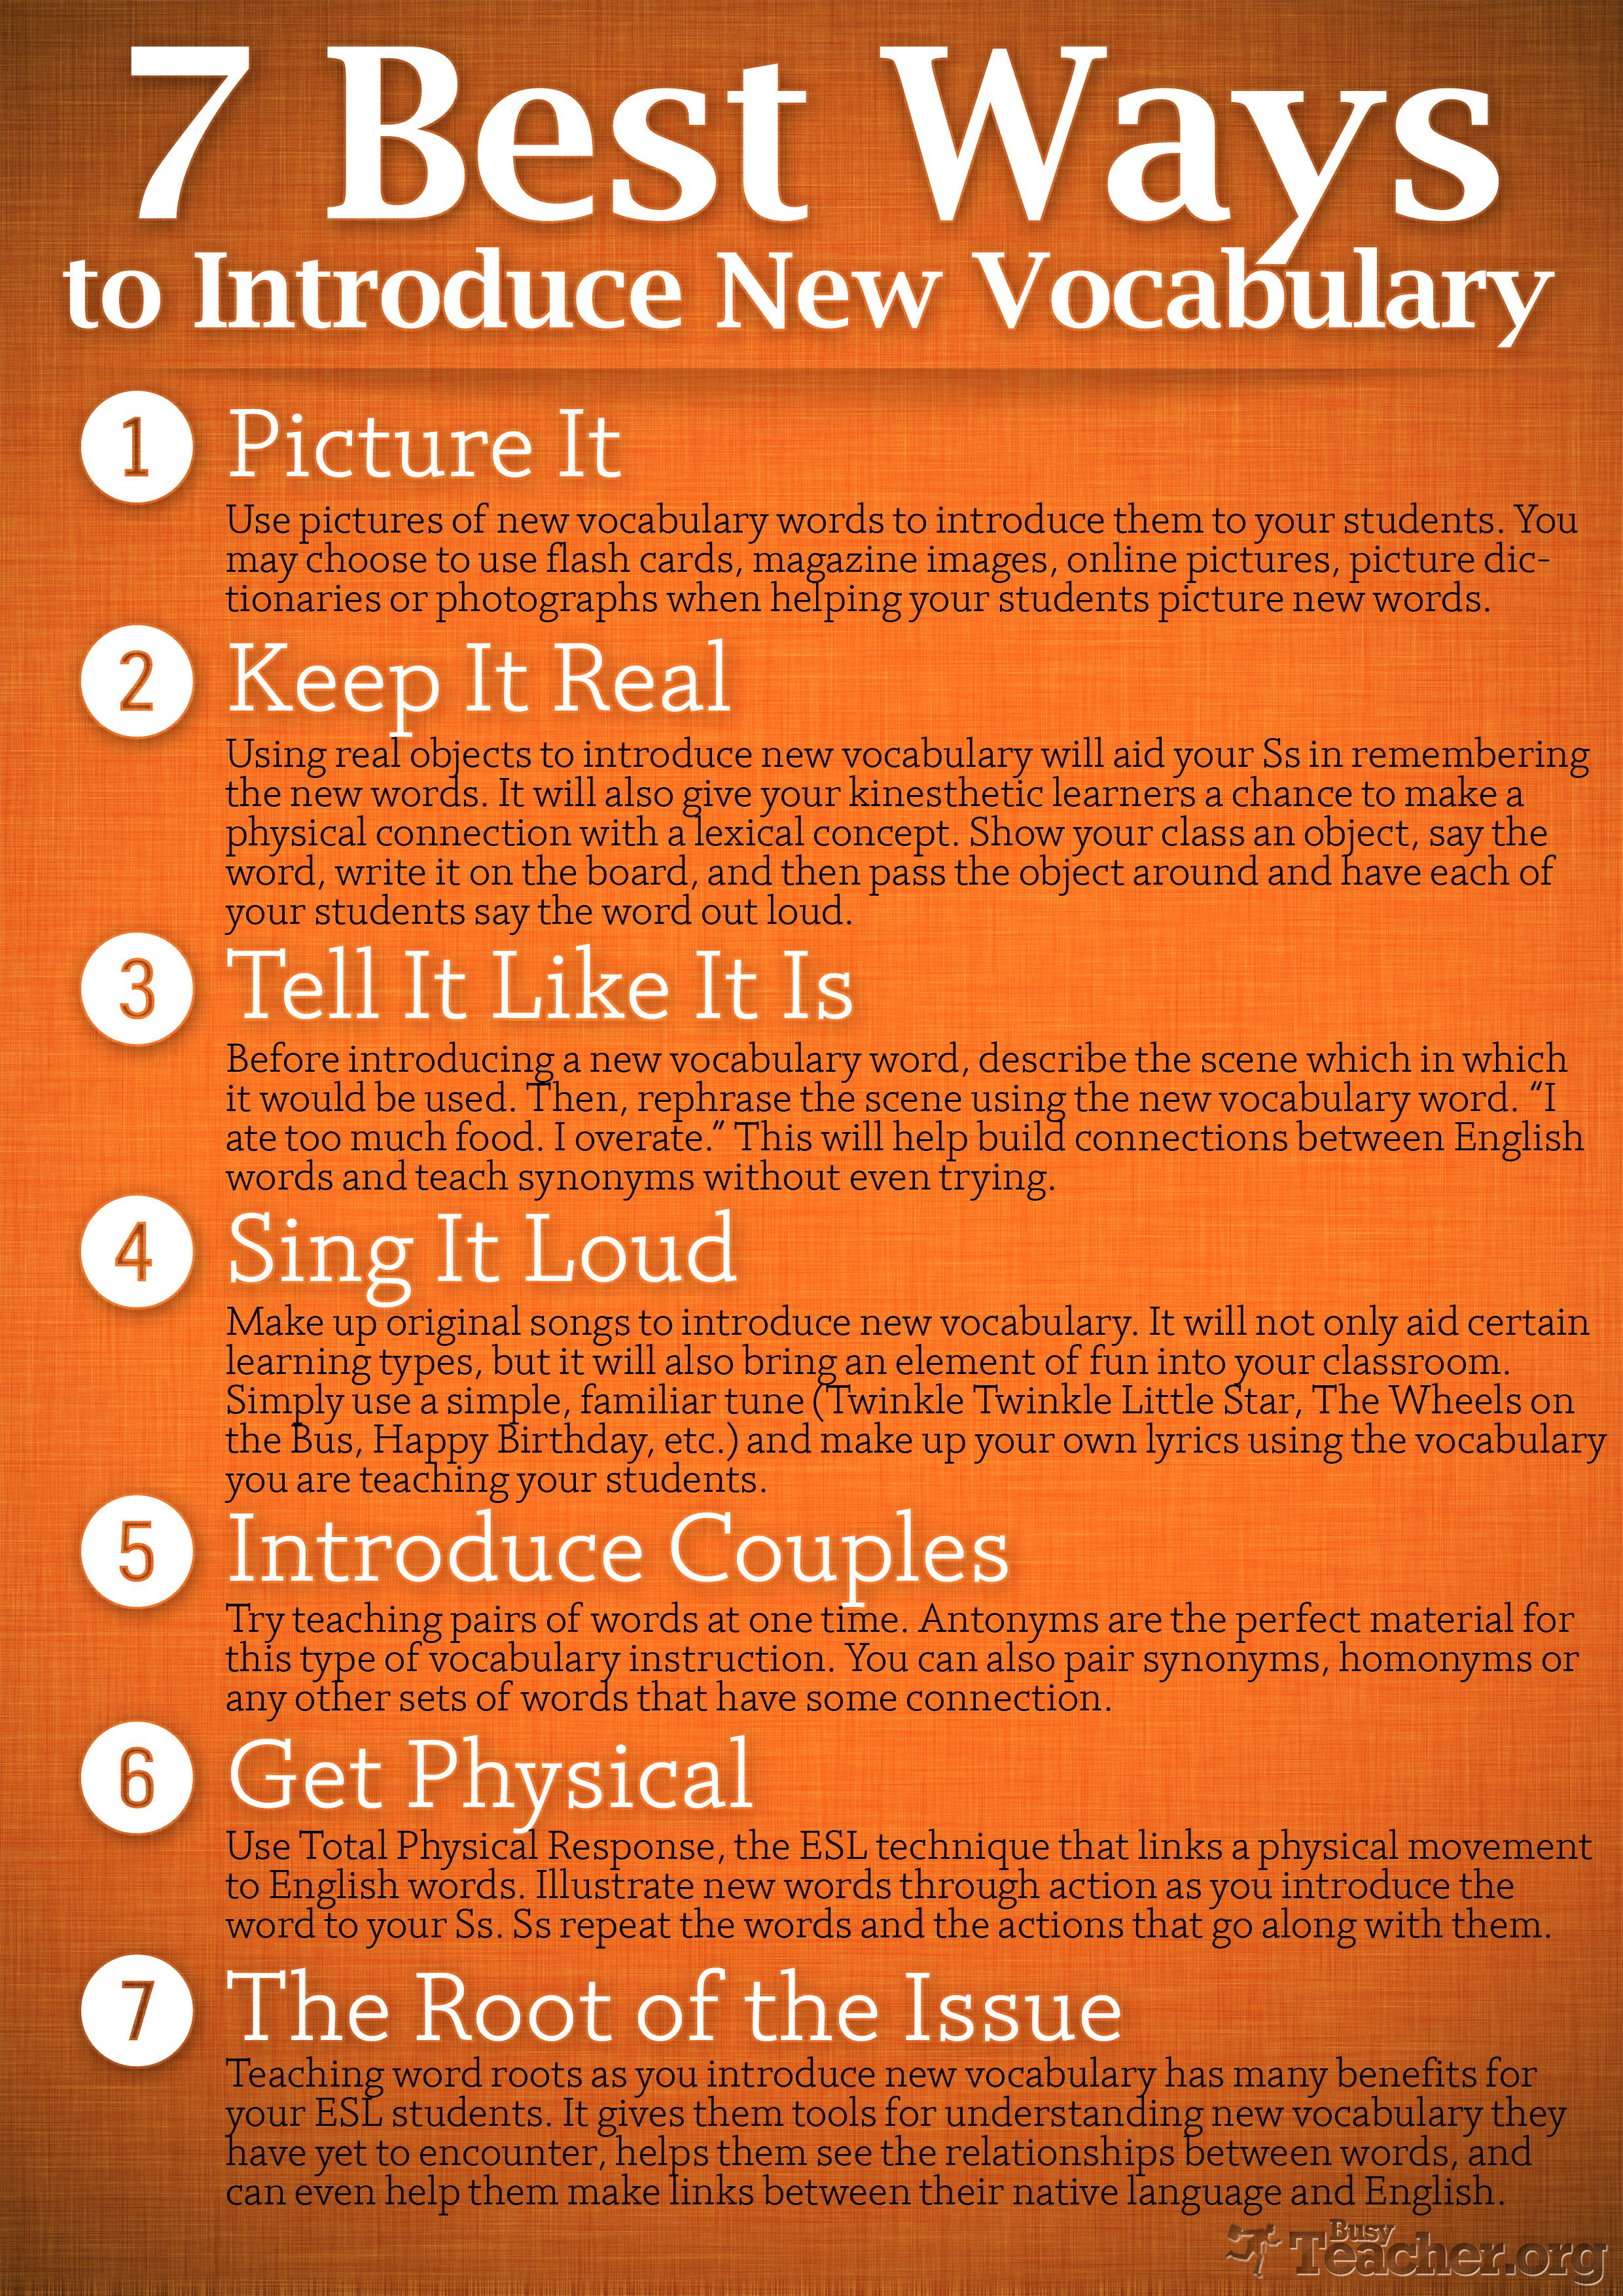 Poster 7 best ways to introduce new vocabulary esl pinterest new vocab ideas publicscrutiny Image collections